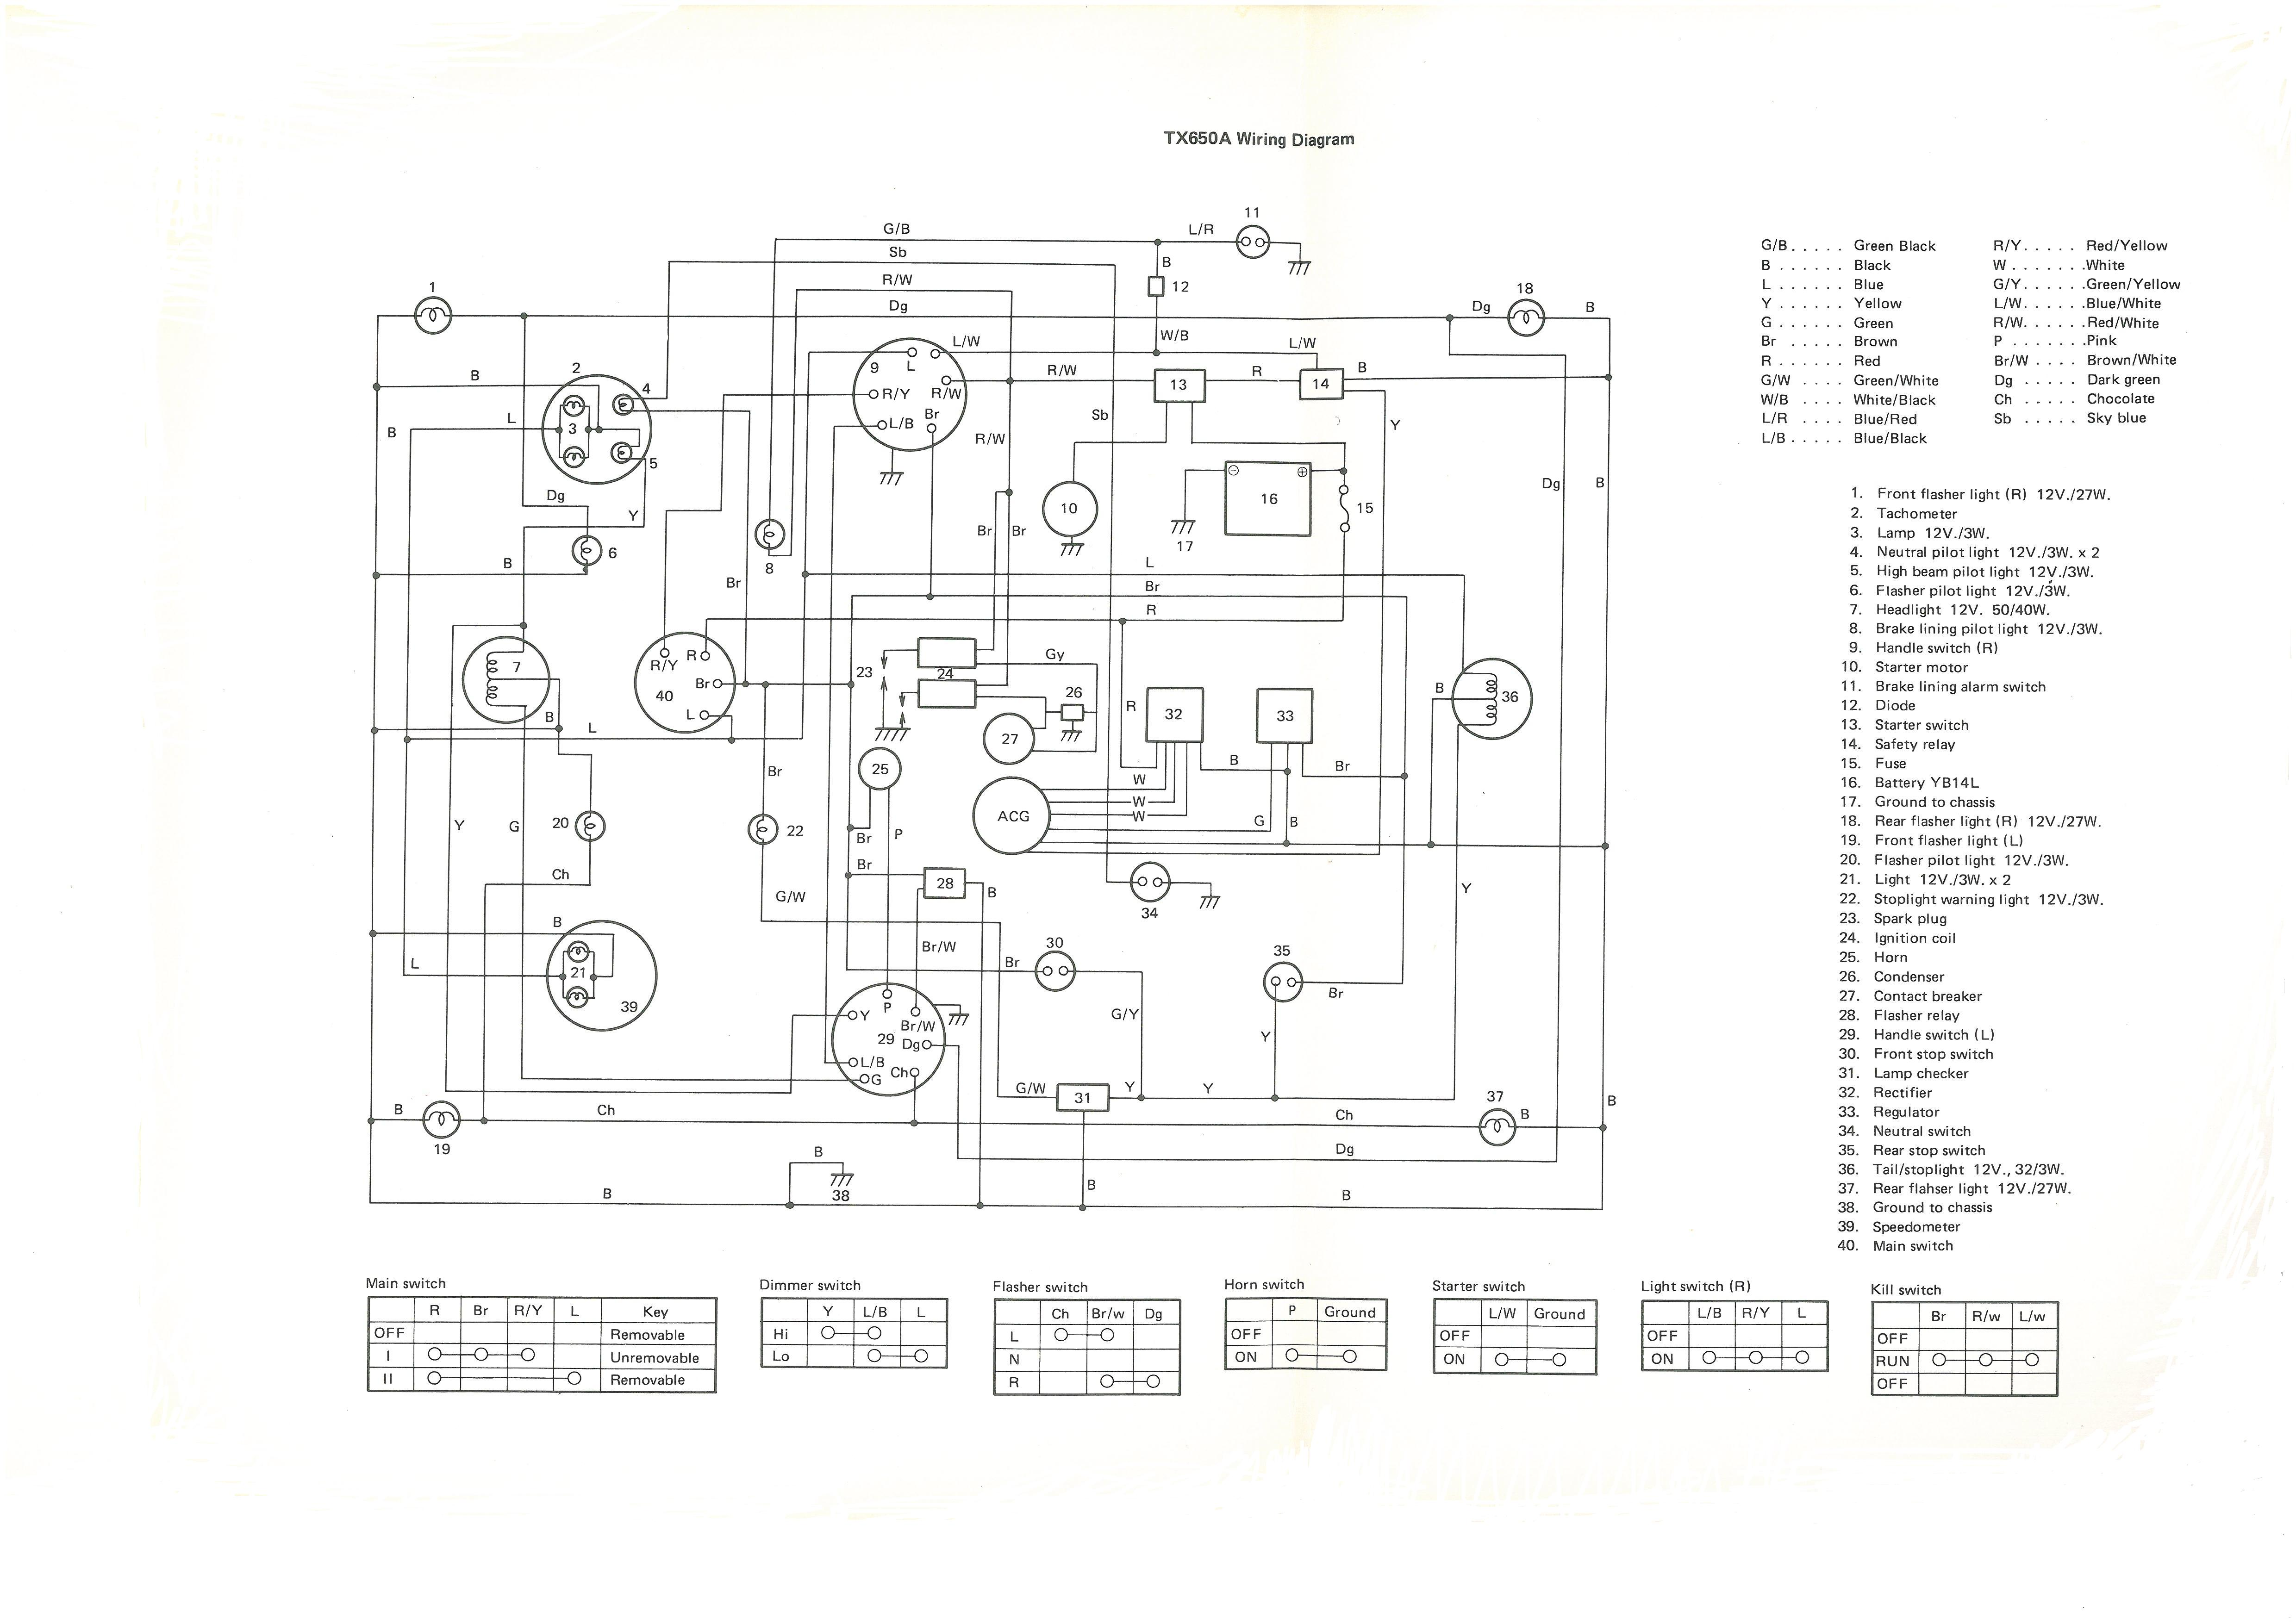 99 Yamaha Grizzly Yfm 600 Wiring Diagram Honda 1997 Suzuki King Quad Best Yfm600 02 Rsx Fuse Box On